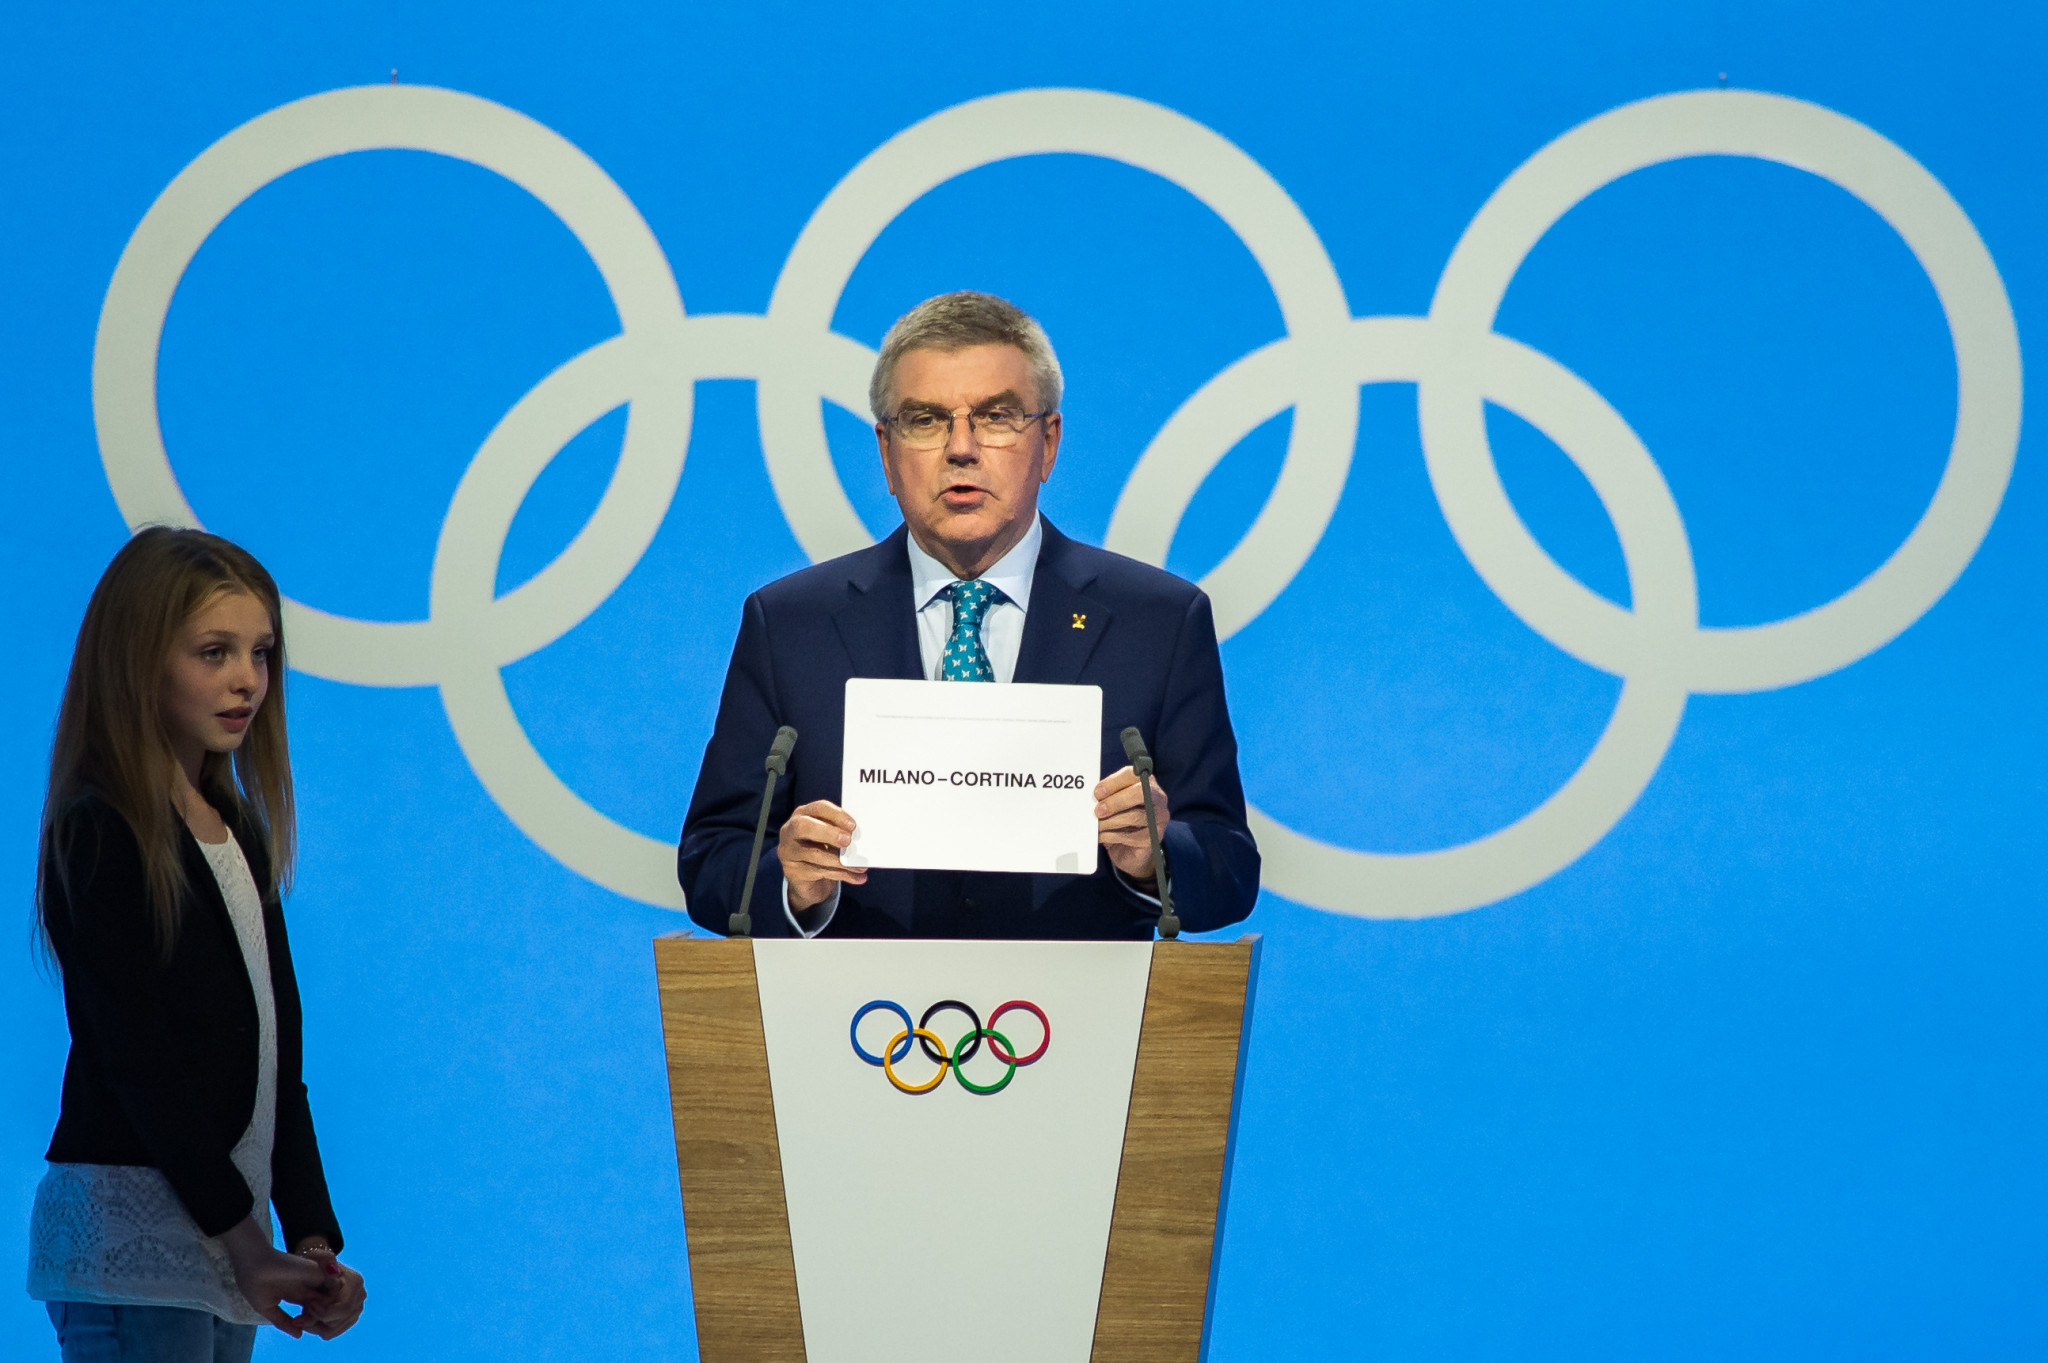 Milan Cortina 2026 were awarded the Winter Olympic and Paralympic Games because they understood better how the political game in the IOC was played - especially now there are new rules ©Getty Images